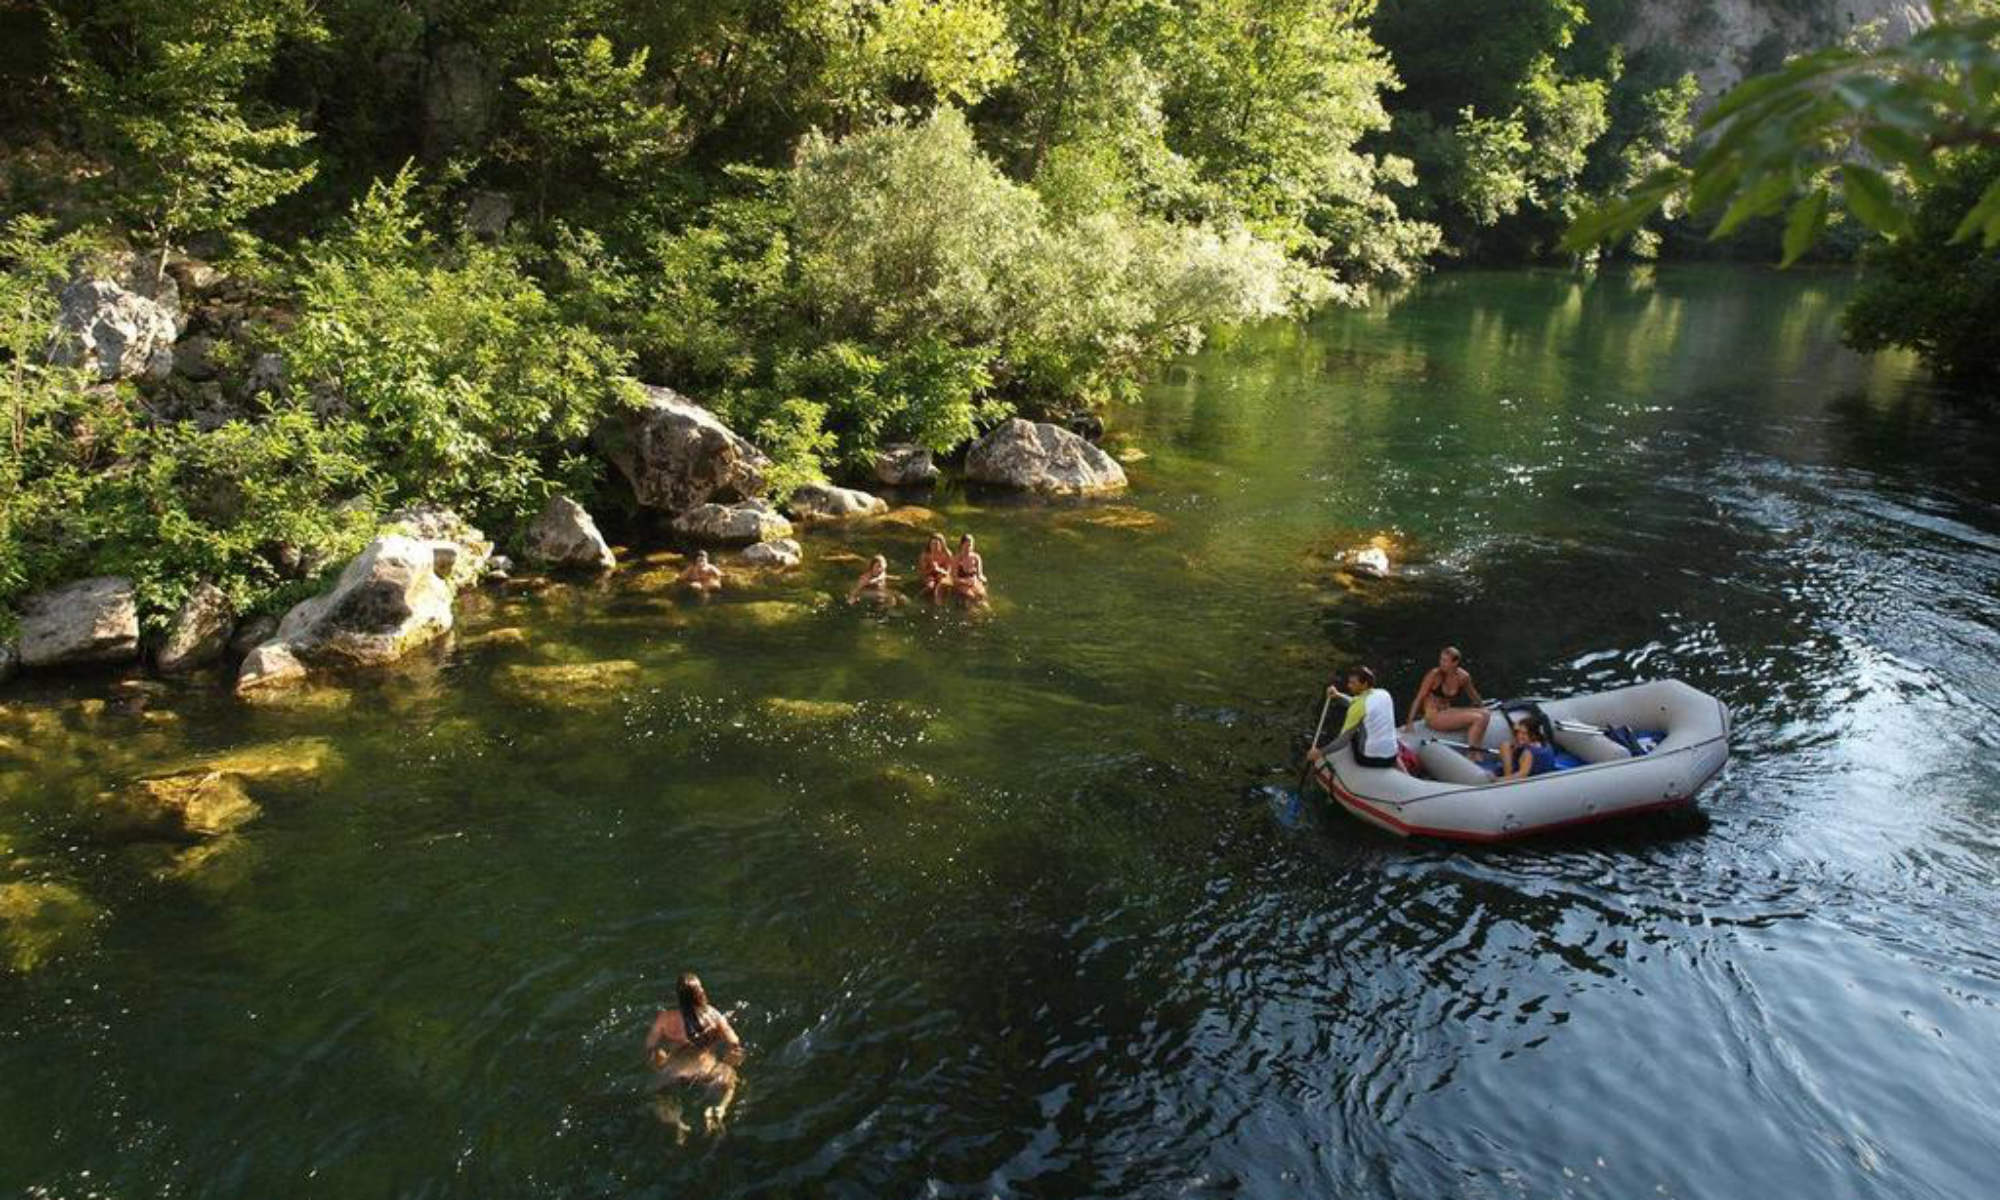 A group of people cooling off in the water during a white water rafting tour on the Cetina River.